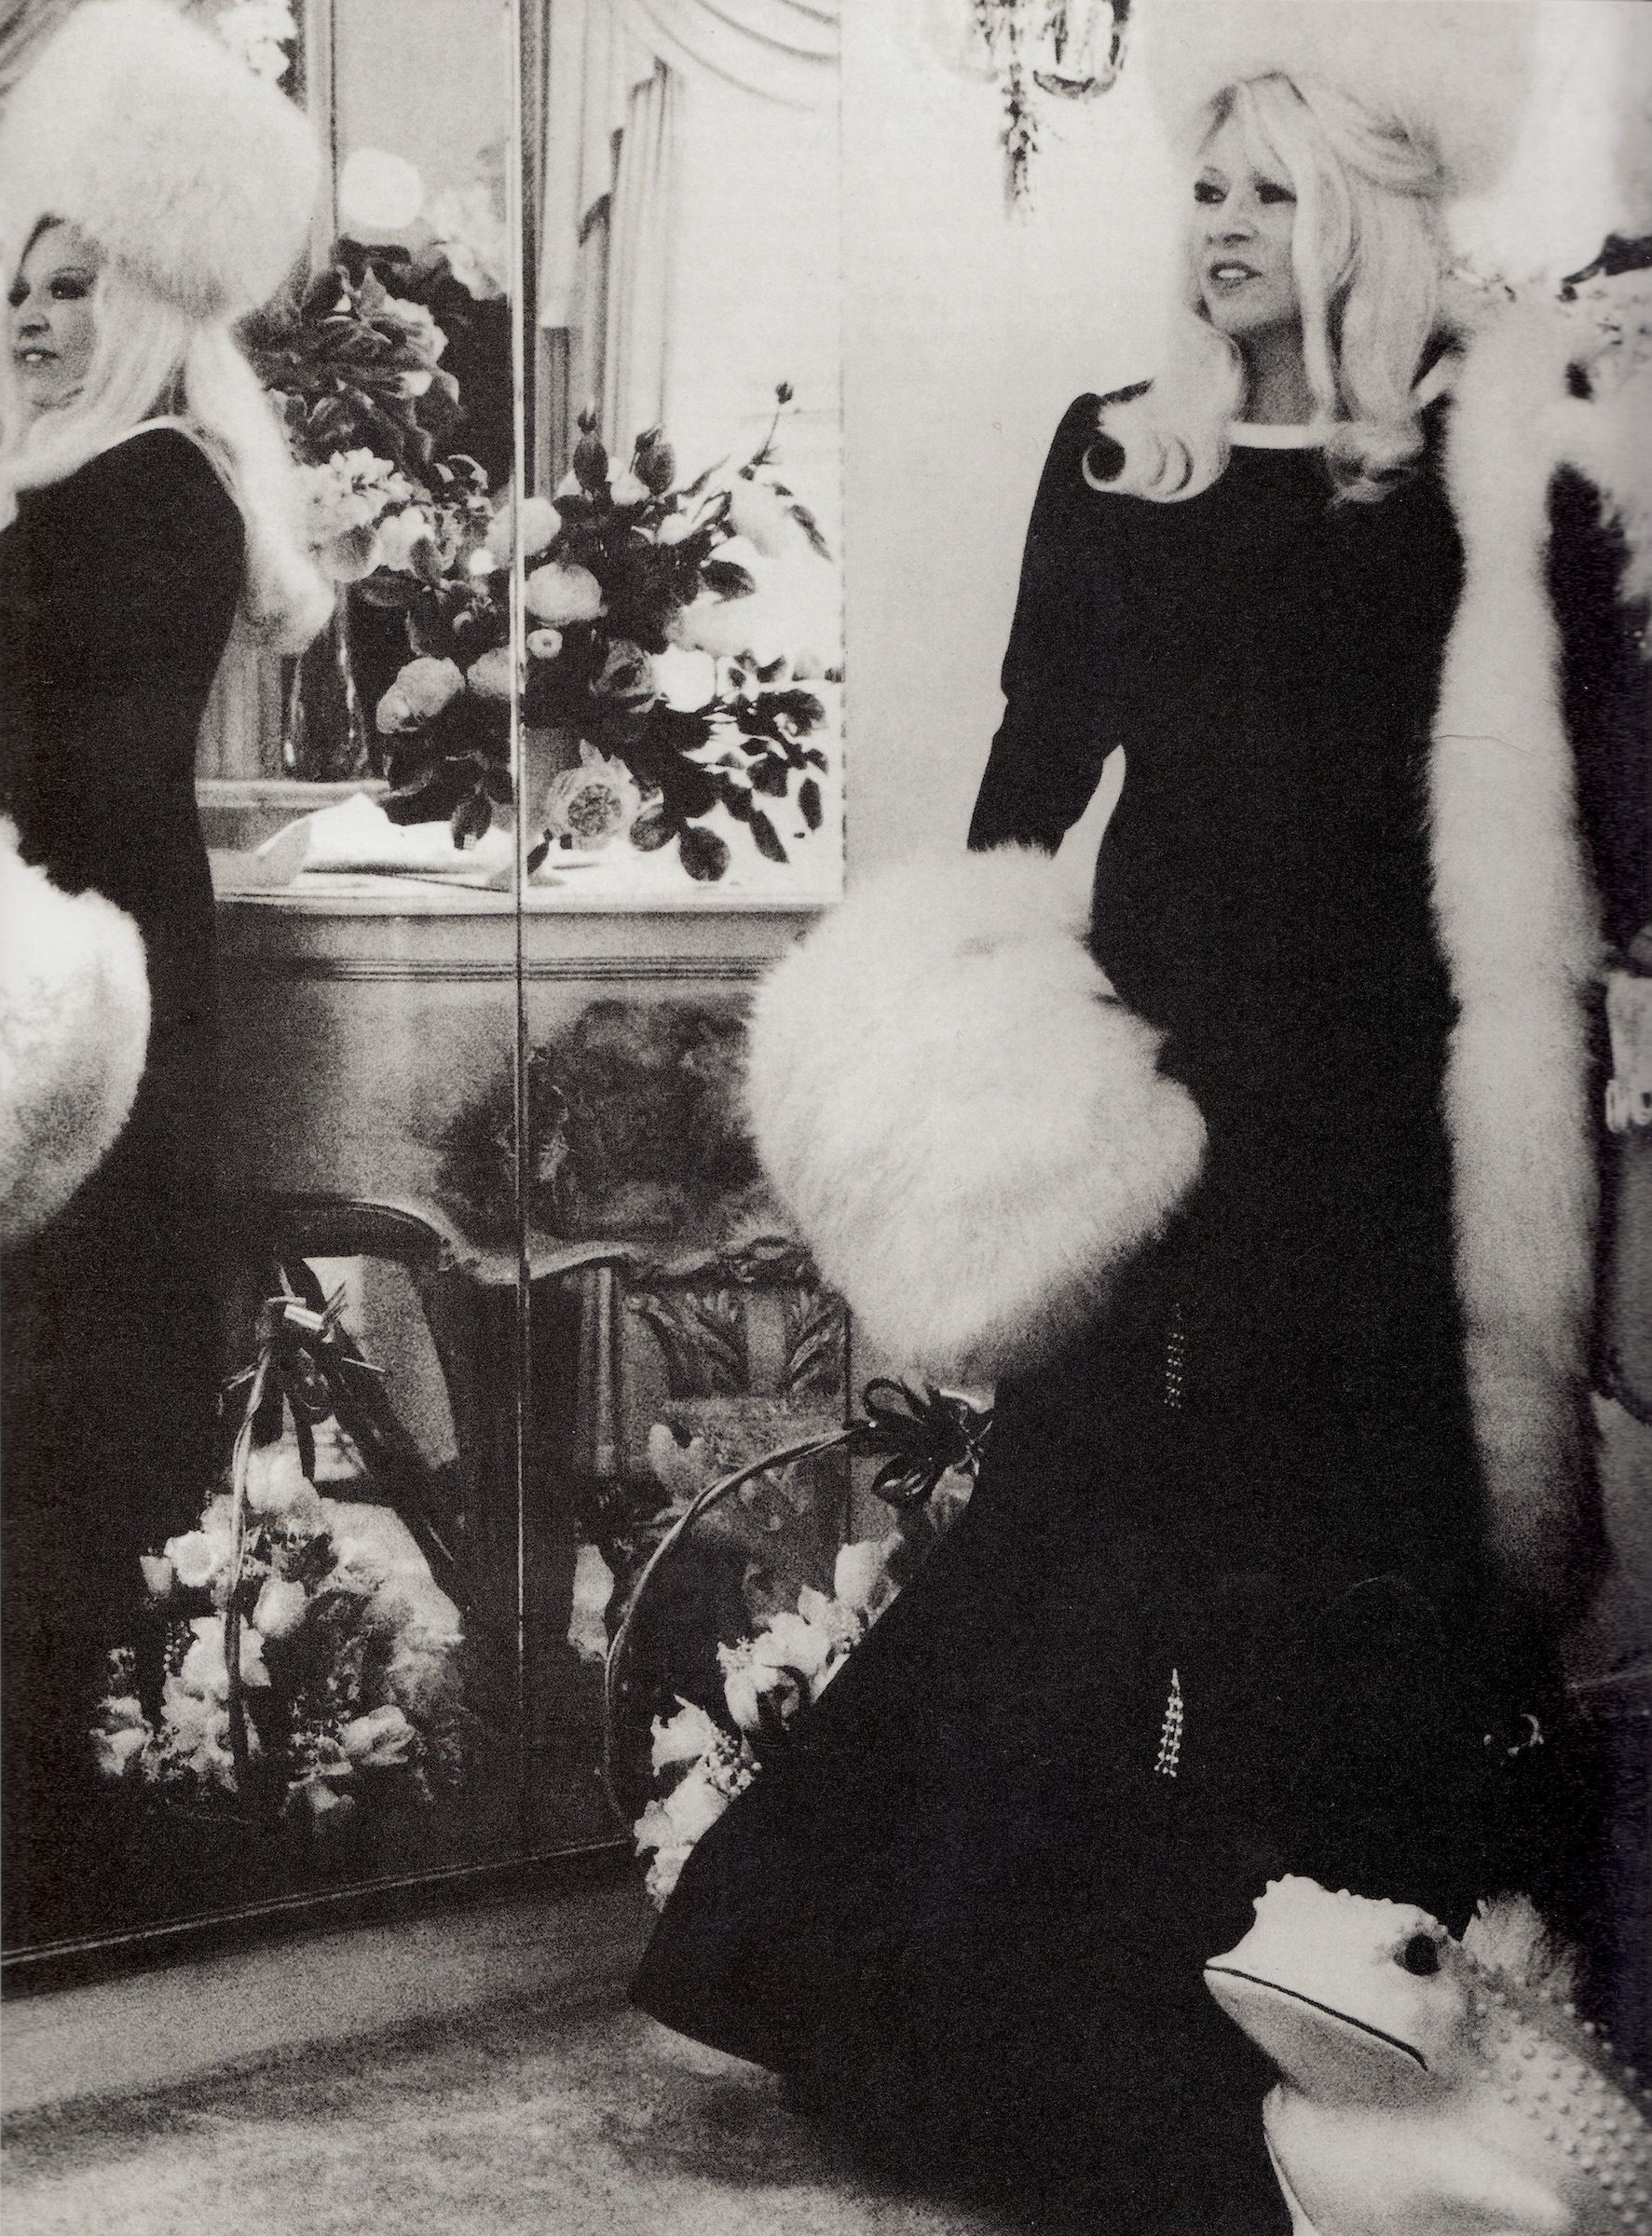 Legendary Mae West At 77 In Her Apartment The Ravenswood Reflected Mirrors A Bowel Of Forest Lawn Plastic Flowers Photo Comment By Y